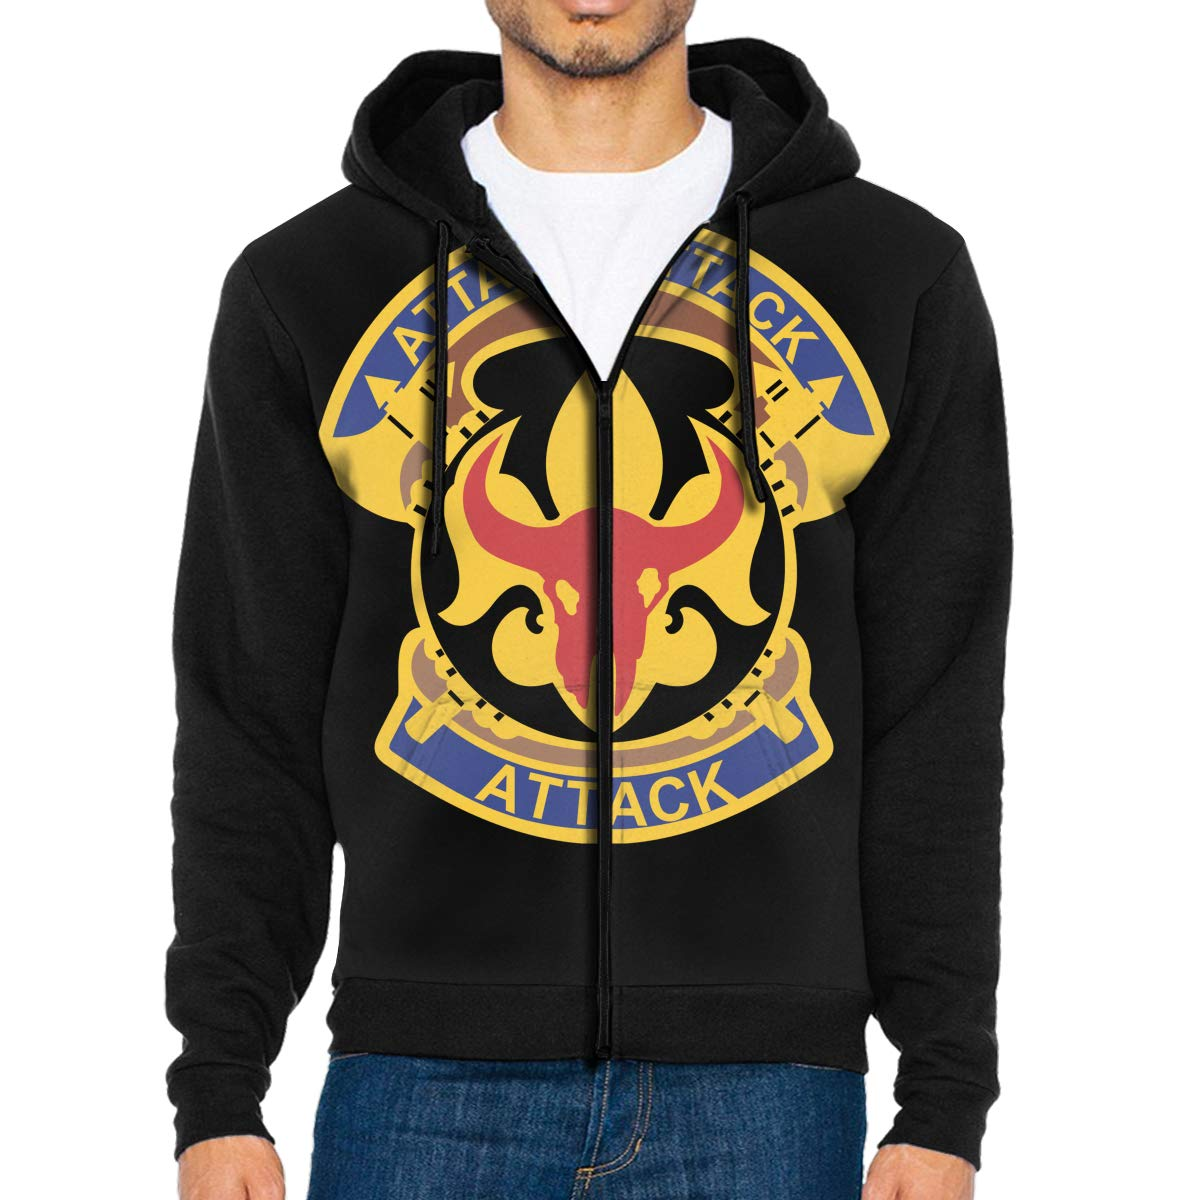 34th Infantry Division Band Mens Full-Zip Up Hoodie Jacket Pullover Sweatshirt